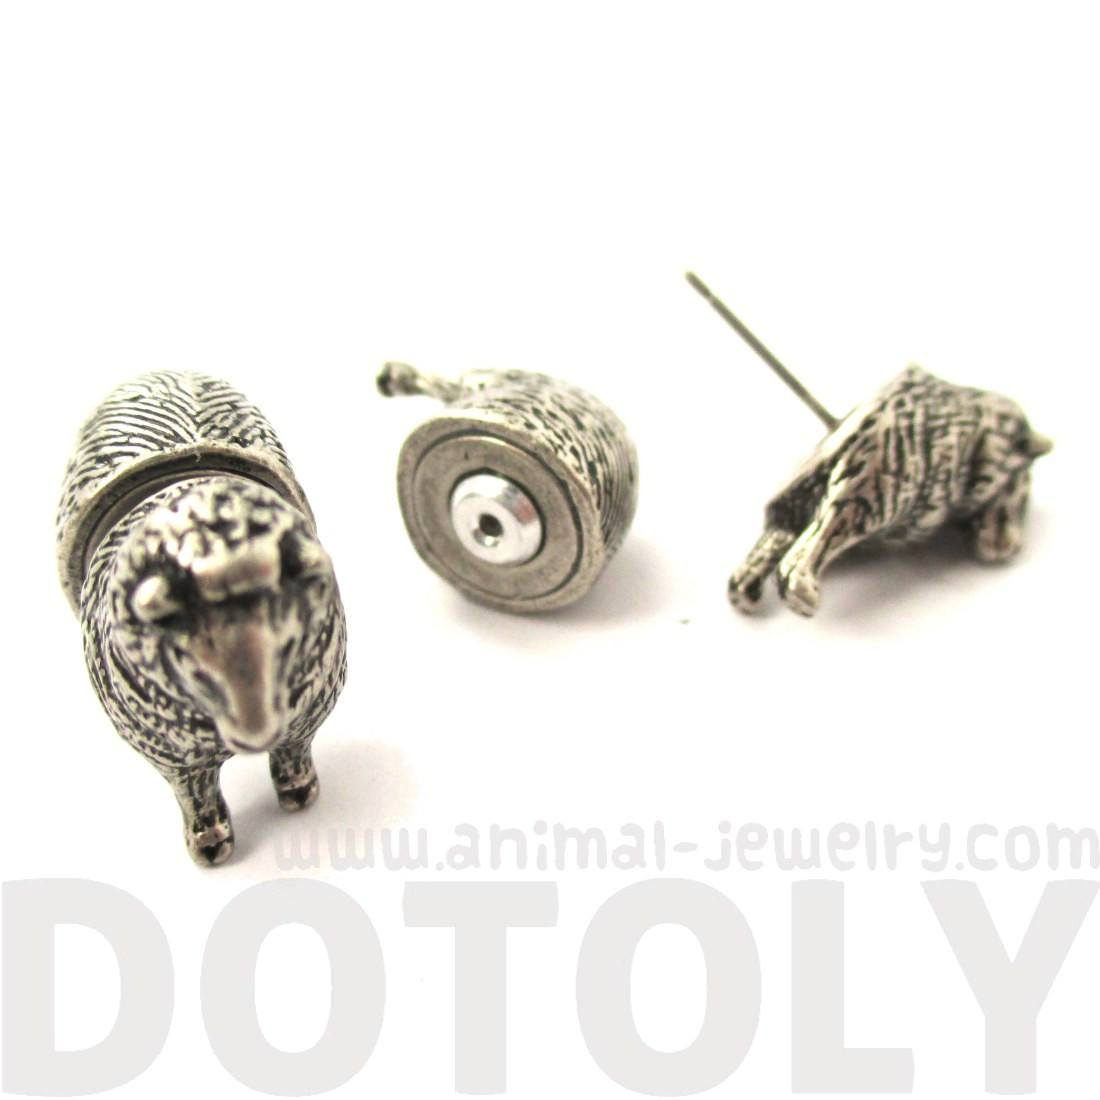 Realistic Sheep Shaped Front and Back Earrings in Silver